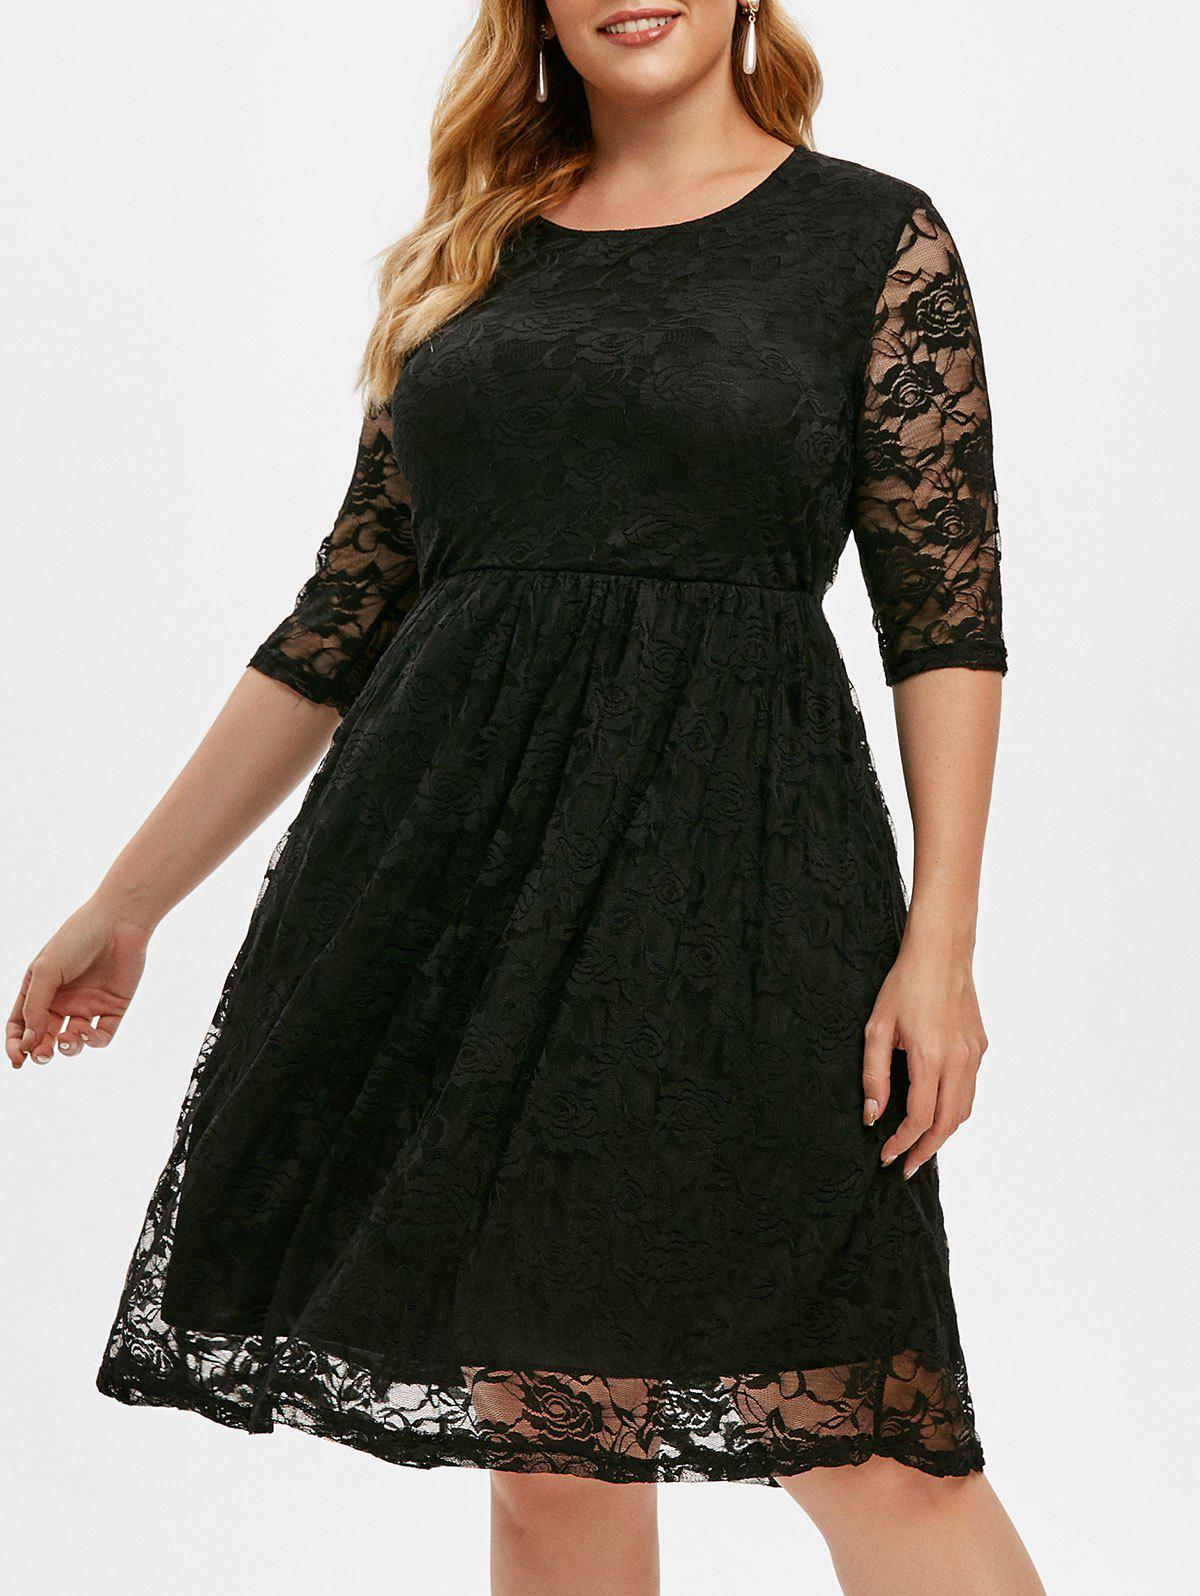 Lined Lace A Line Plus Size Dress - BLACK XL